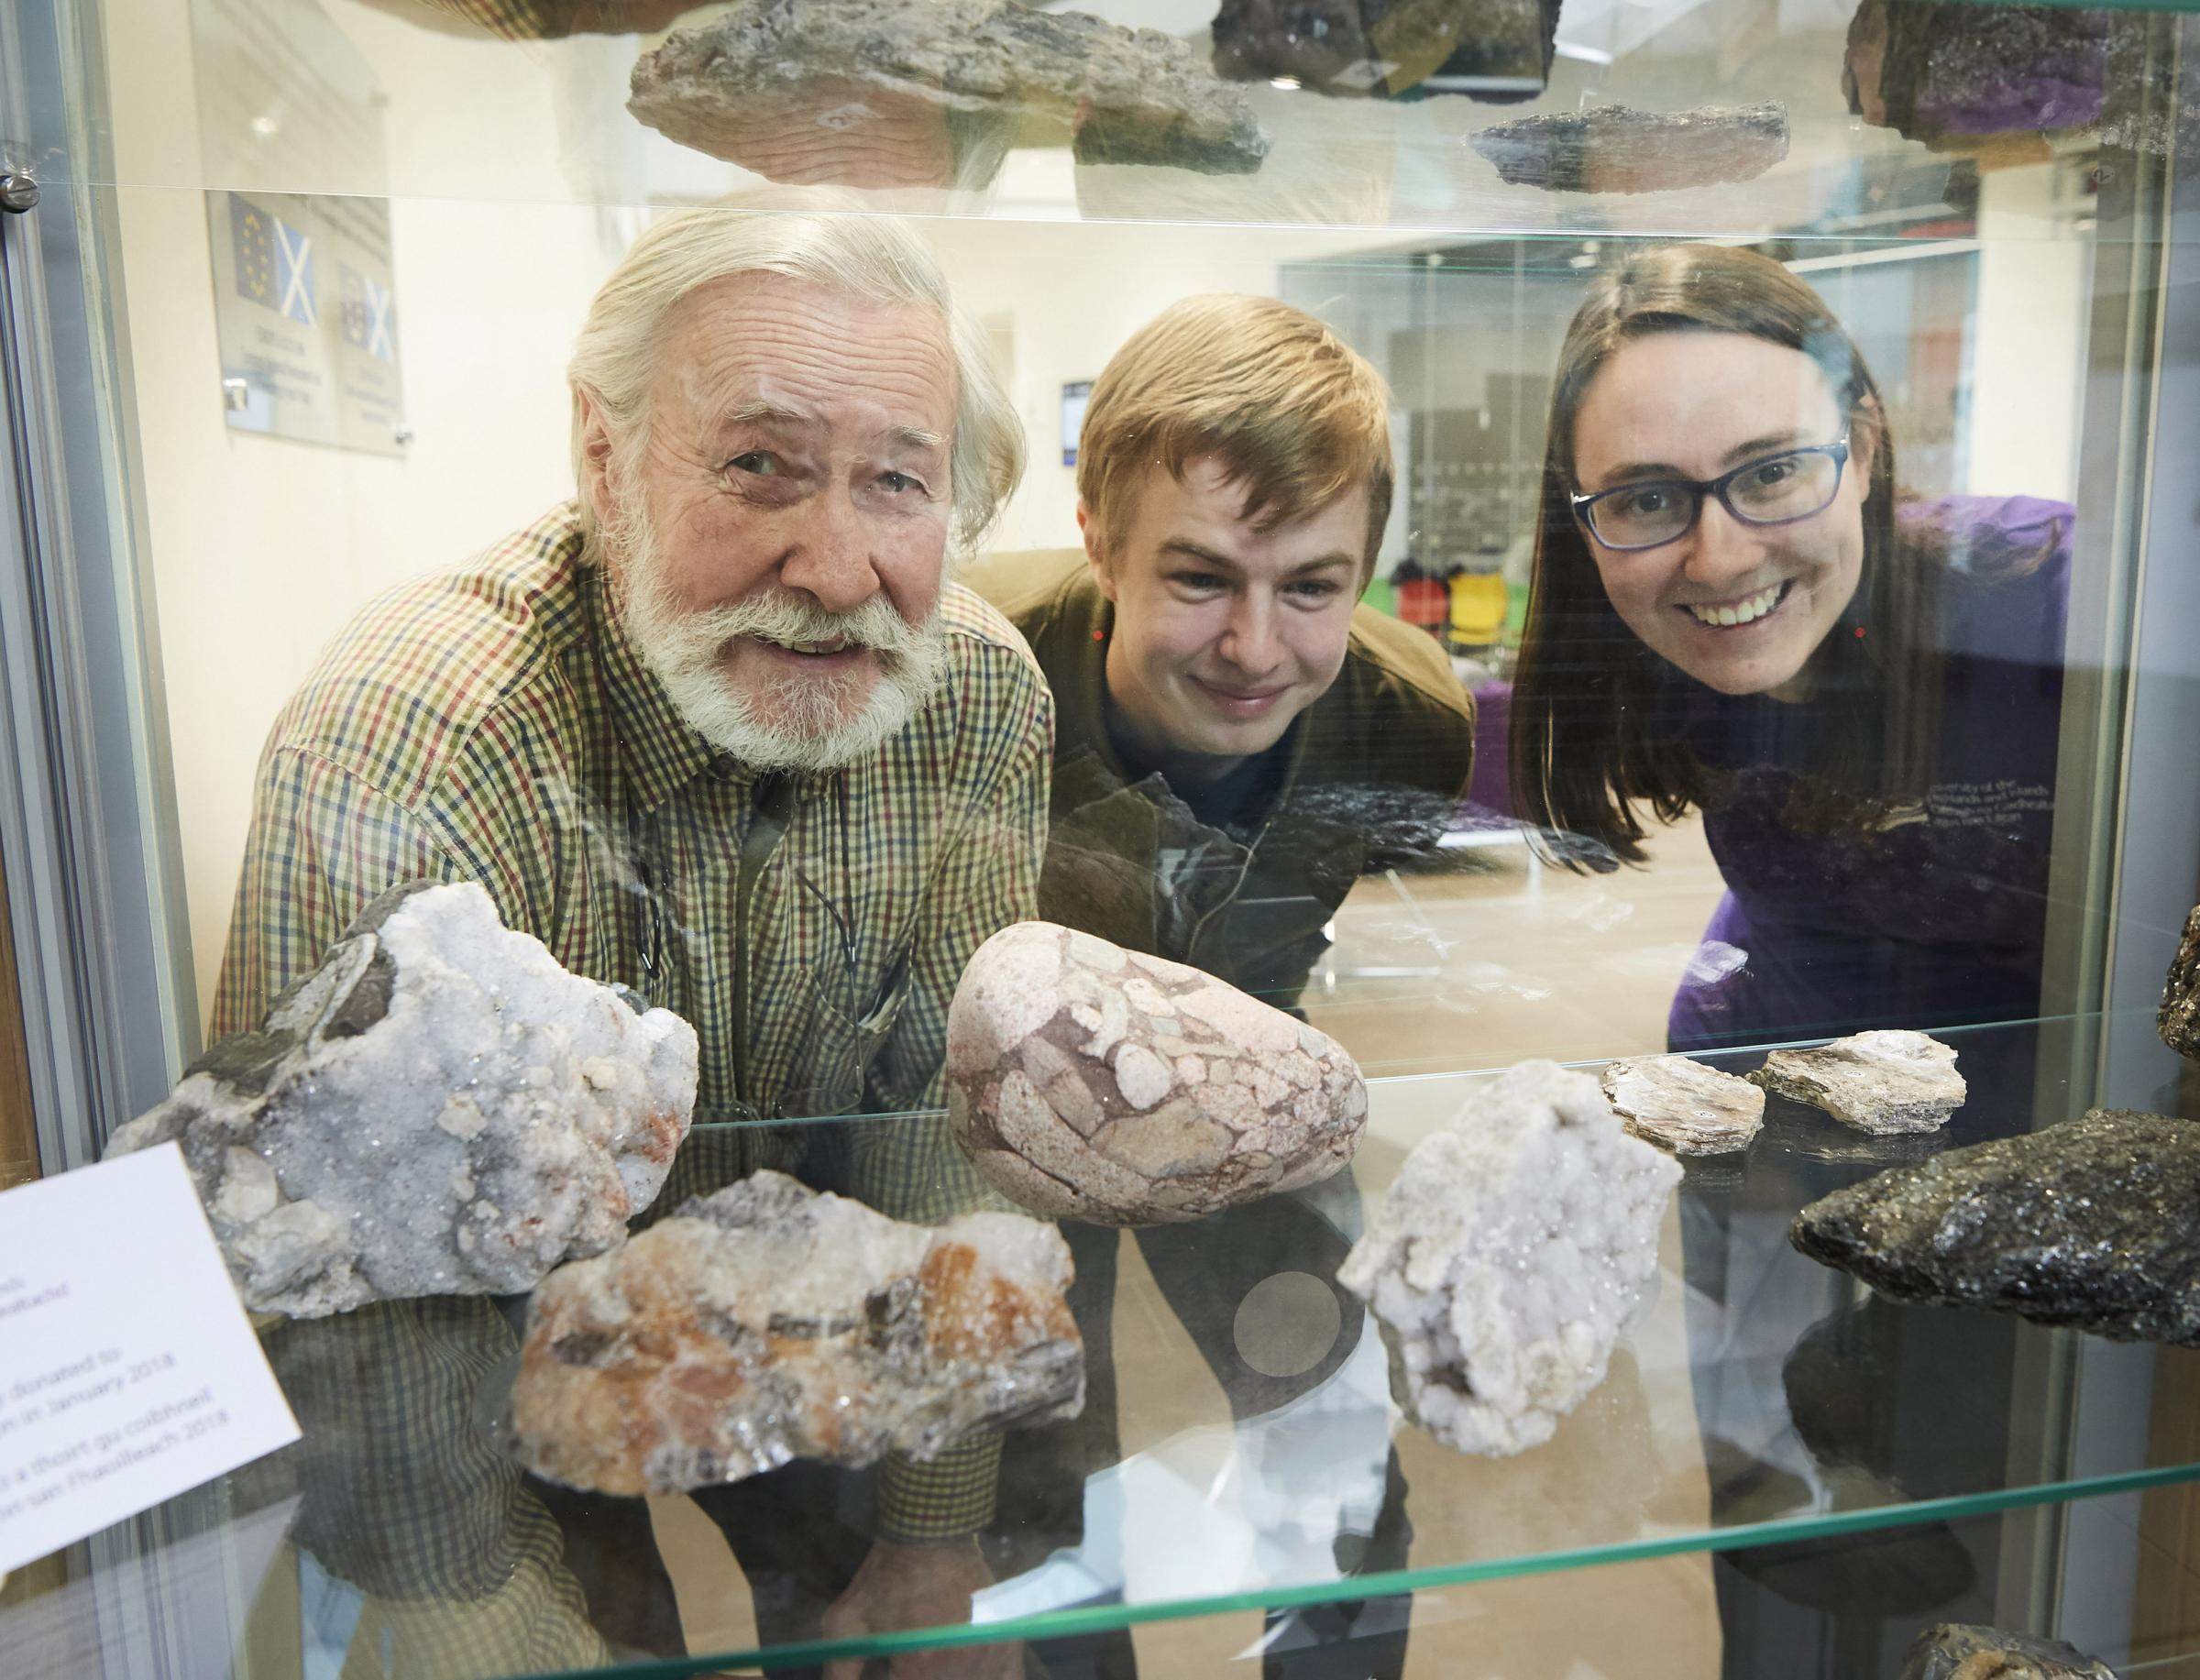 From left: Calum Anton, Keiran Young and Sam Clark with the collection of rock samples gifted to the university